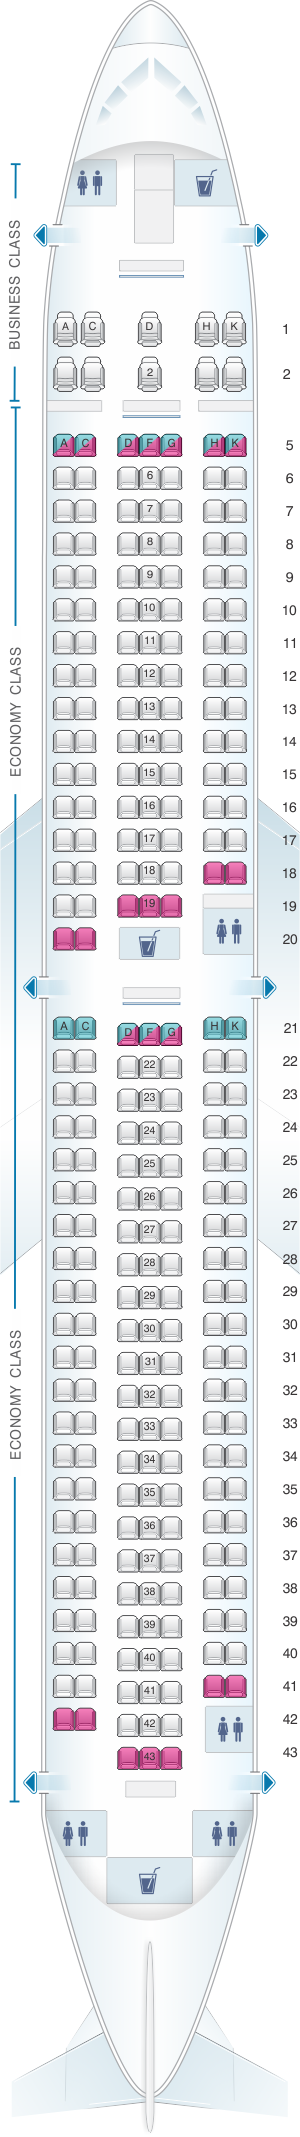 Seat map for ANA - All Nippon Airways Boeing B767 300 domestic